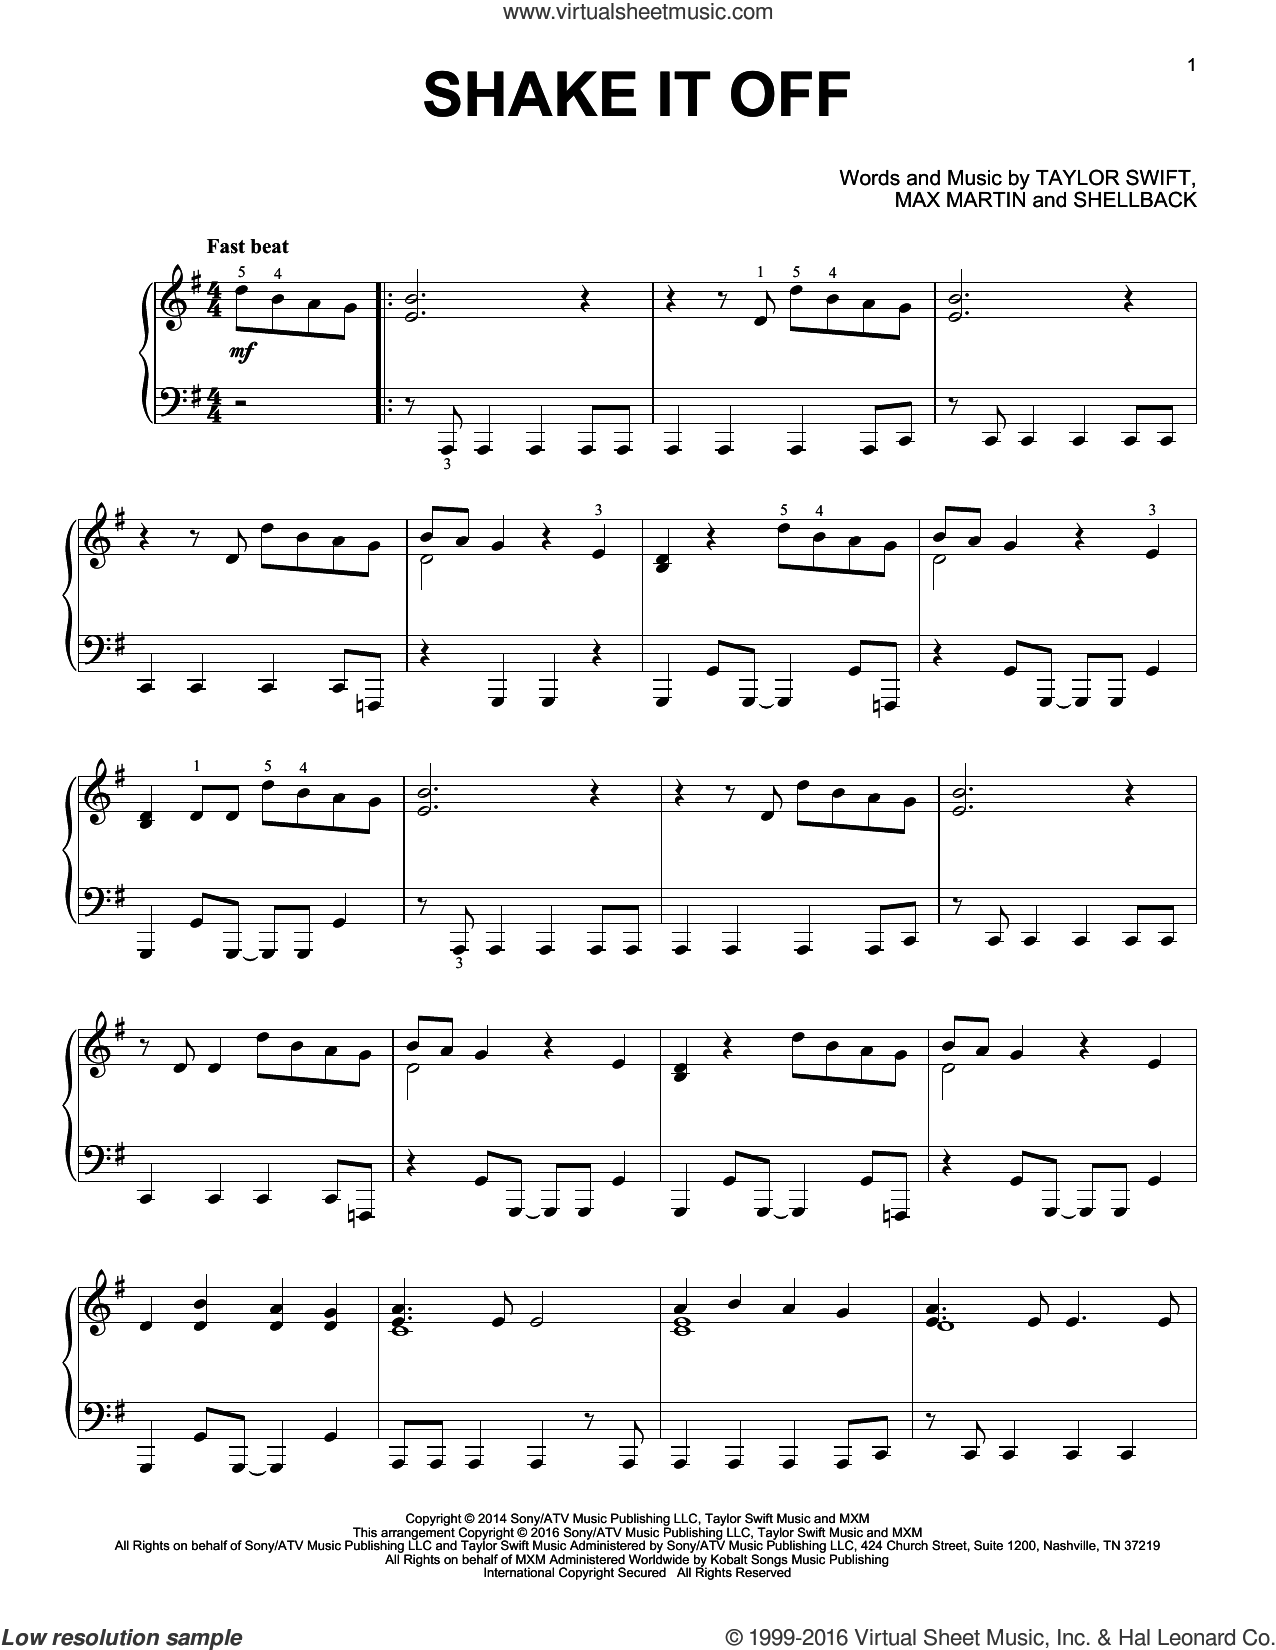 Shake It Off sheet music for piano solo by Taylor Swift, Johan Schuster, Max Martin and Shellback, intermediate skill level